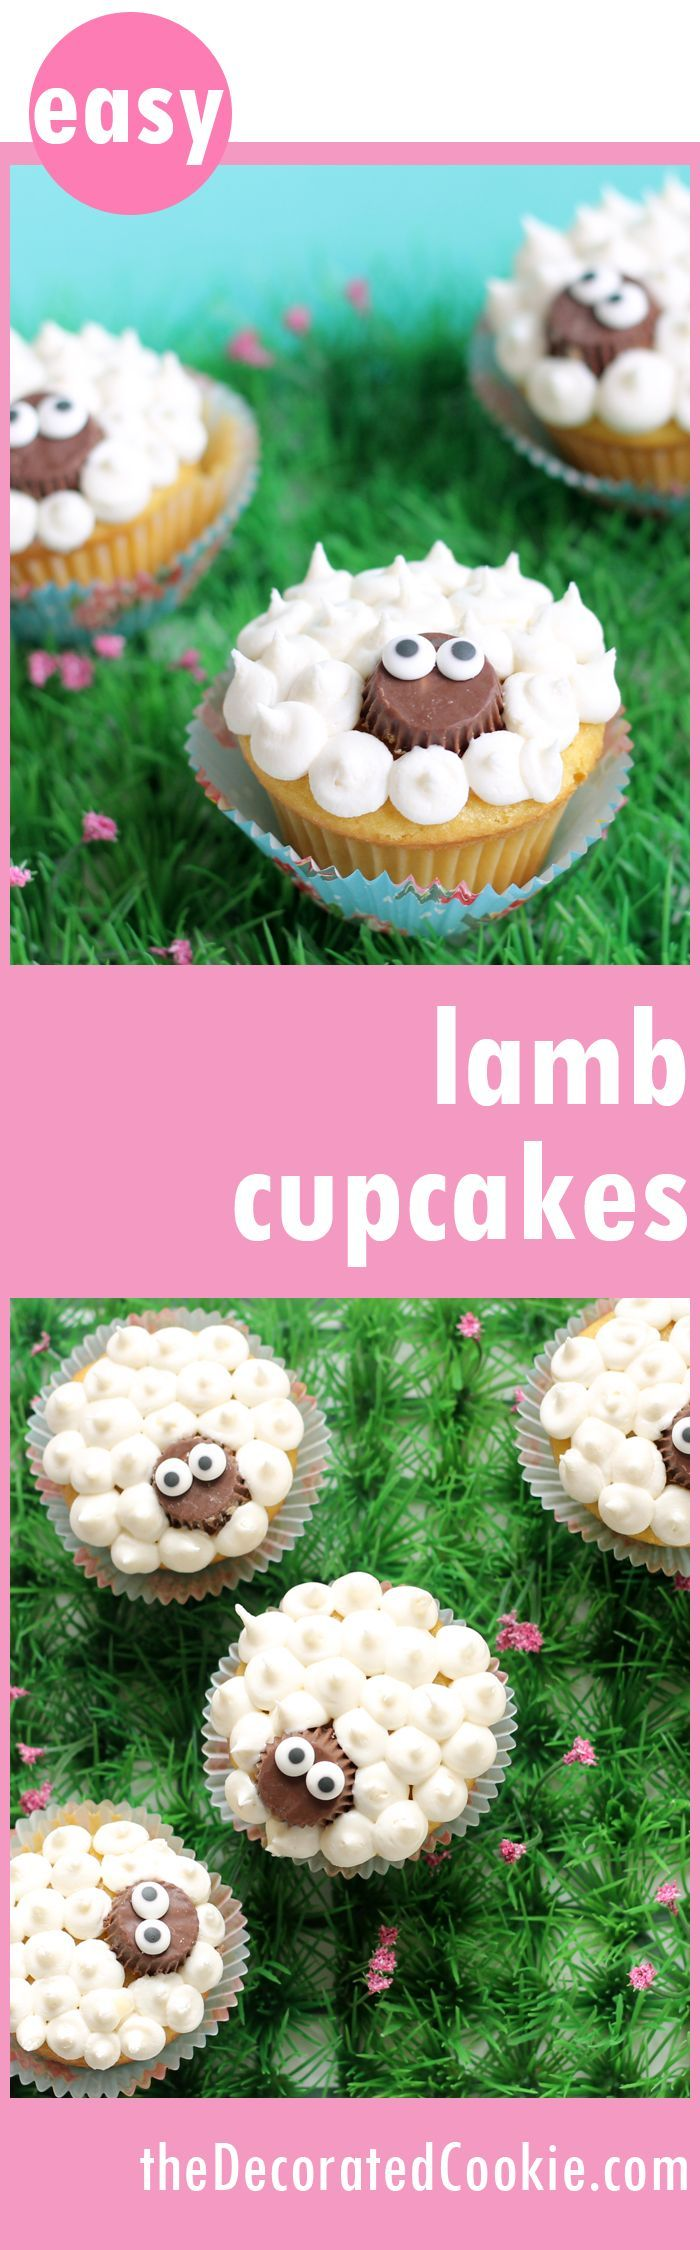 best ideas about lamb cake marshmallow cake 17 best ideas about lamb cake marshmallow cake easter lamb and sheep cake